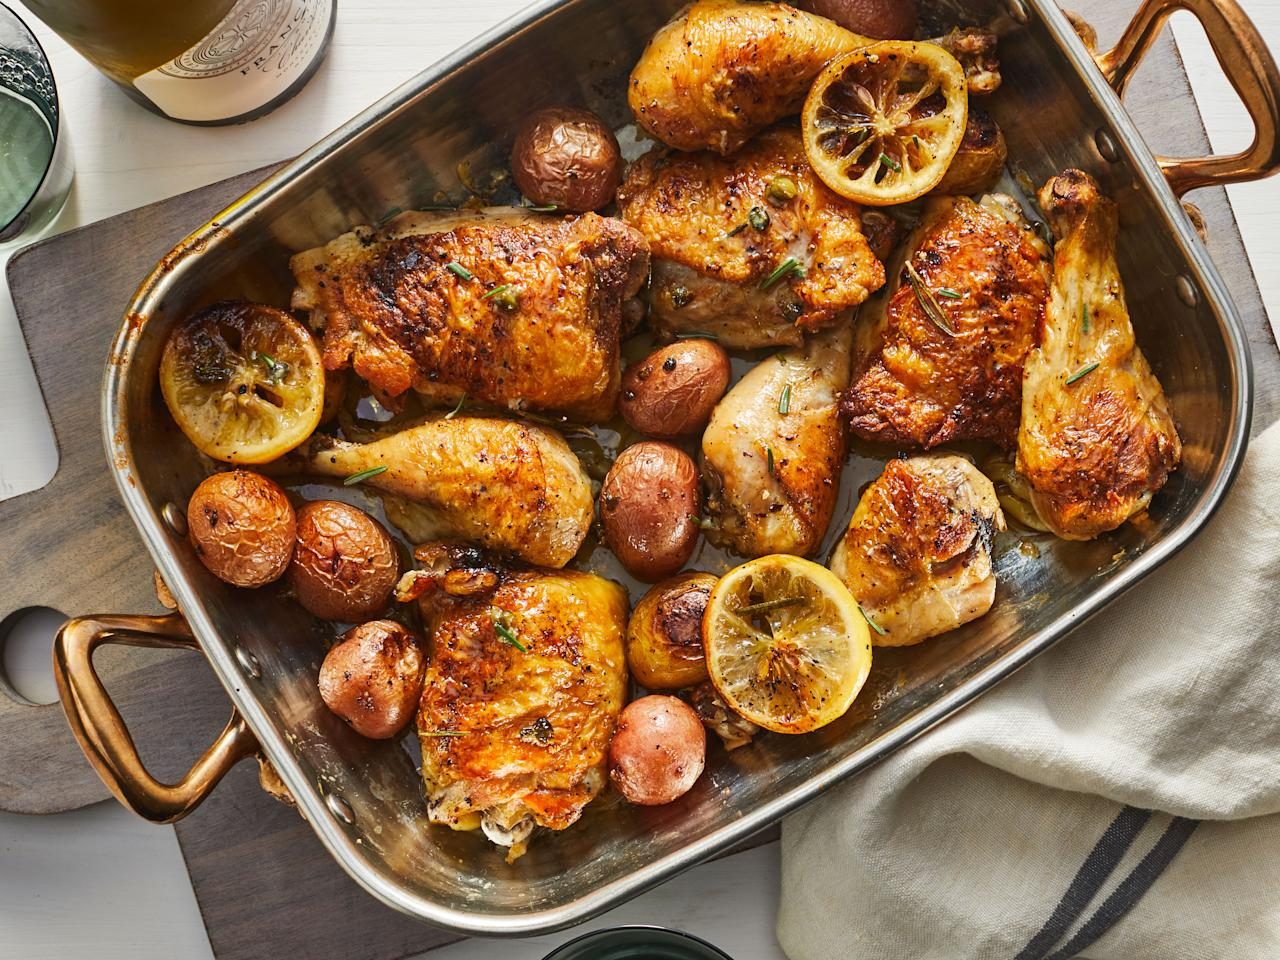 """<p>Nicknamed """"Anytime Chicken"""" by Test Kitchen Specialist Vanessa McNeil Rocchio, this winner of a chicken dinner is our new favorite roasting-pan supper for weeknights or easy entertaining with friends.</p> <p><a href=""""https://www.myrecipes.com/recipe/rosemary-garlic-chicken-potatoes"""">Lemon-Rosemary-Garlic Chicken and Potatoes Recipe</a></p>"""